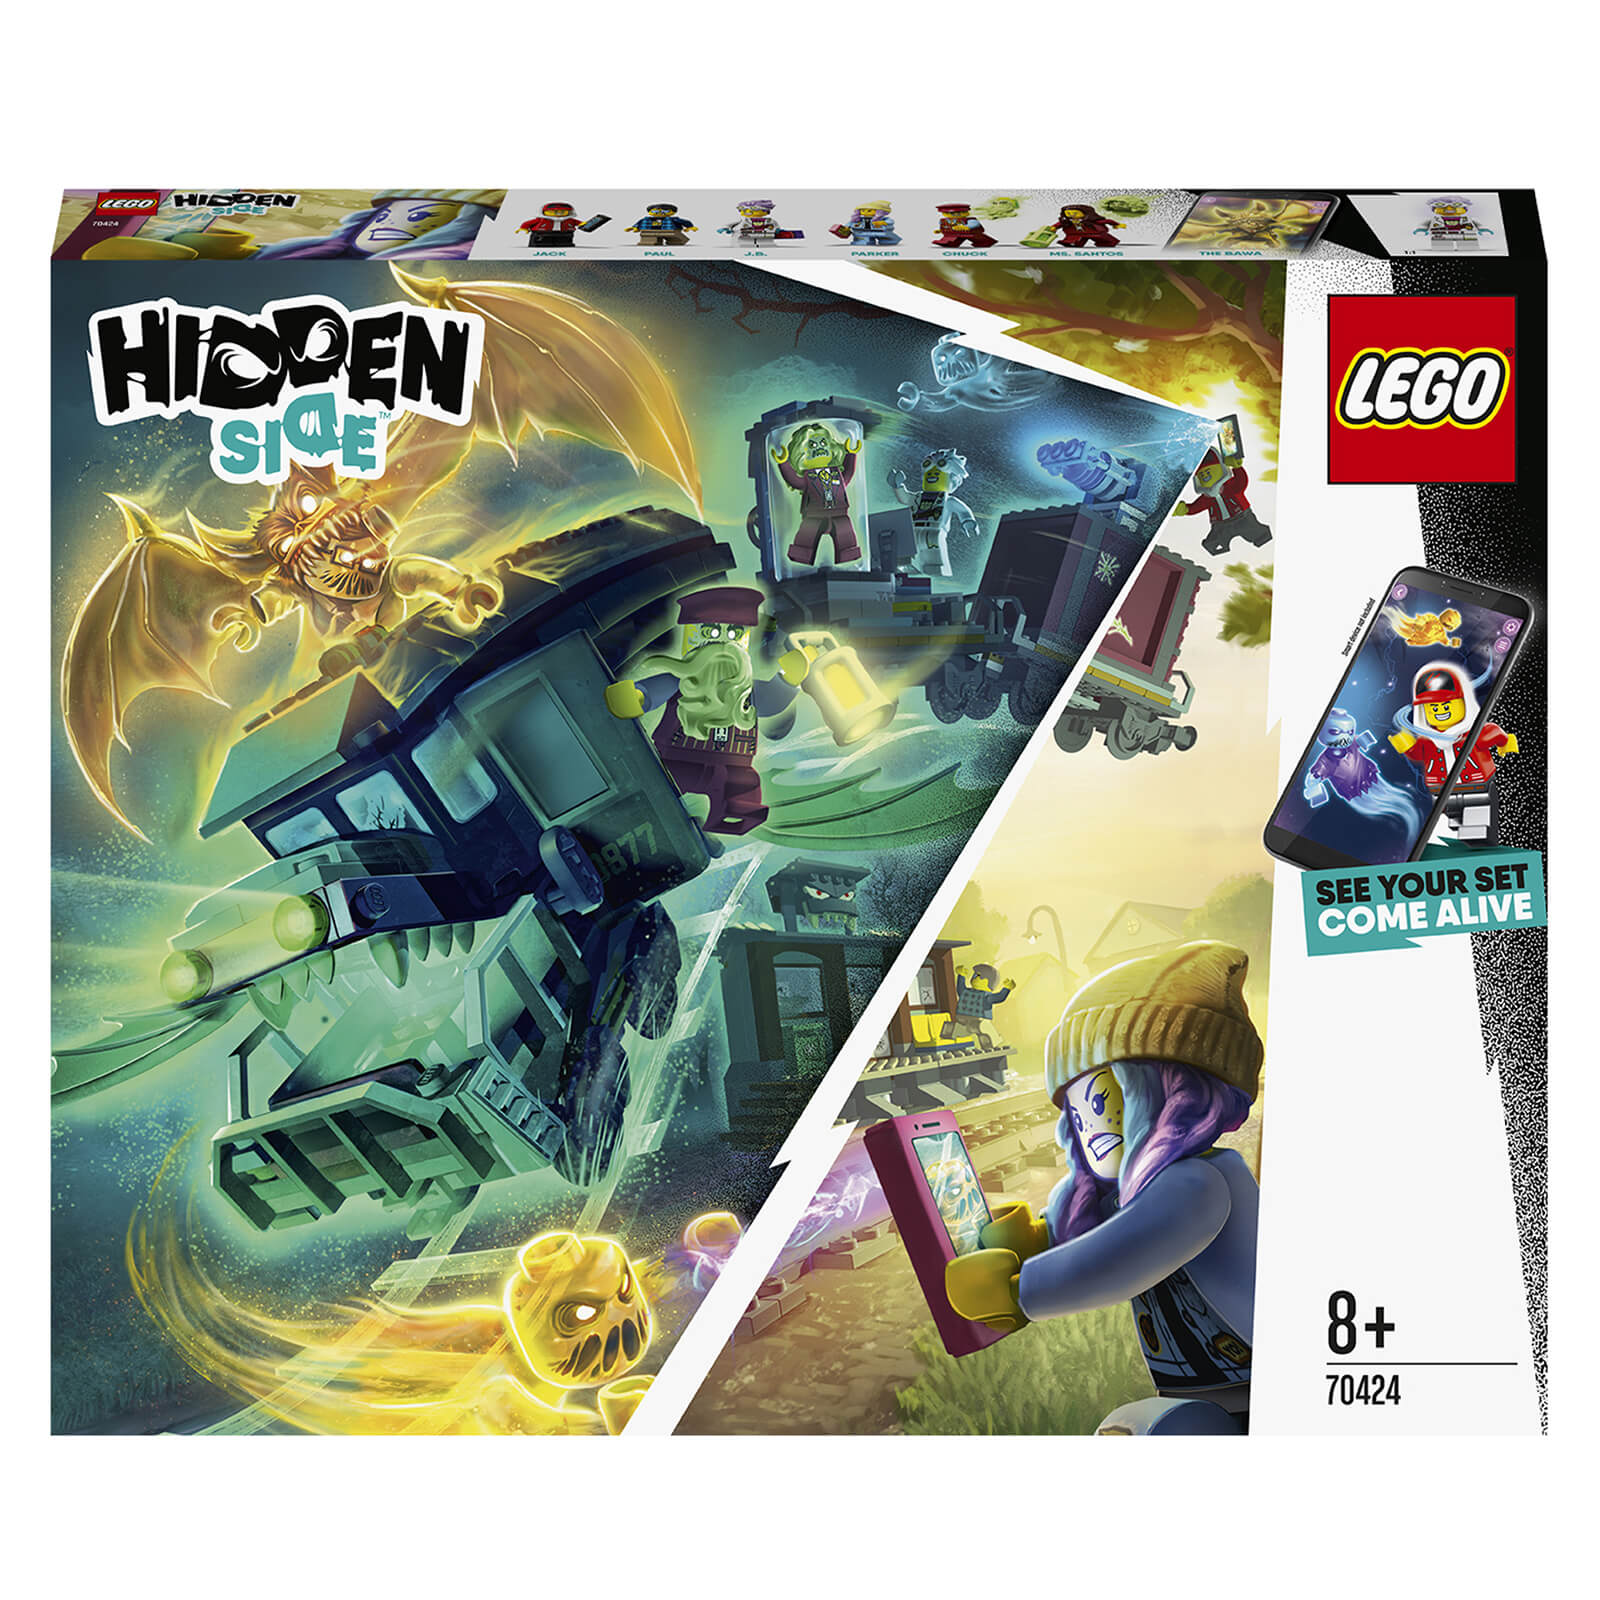 Image of LEGO Hidden Side: Ghost Train Express with AR Games Set (70424)